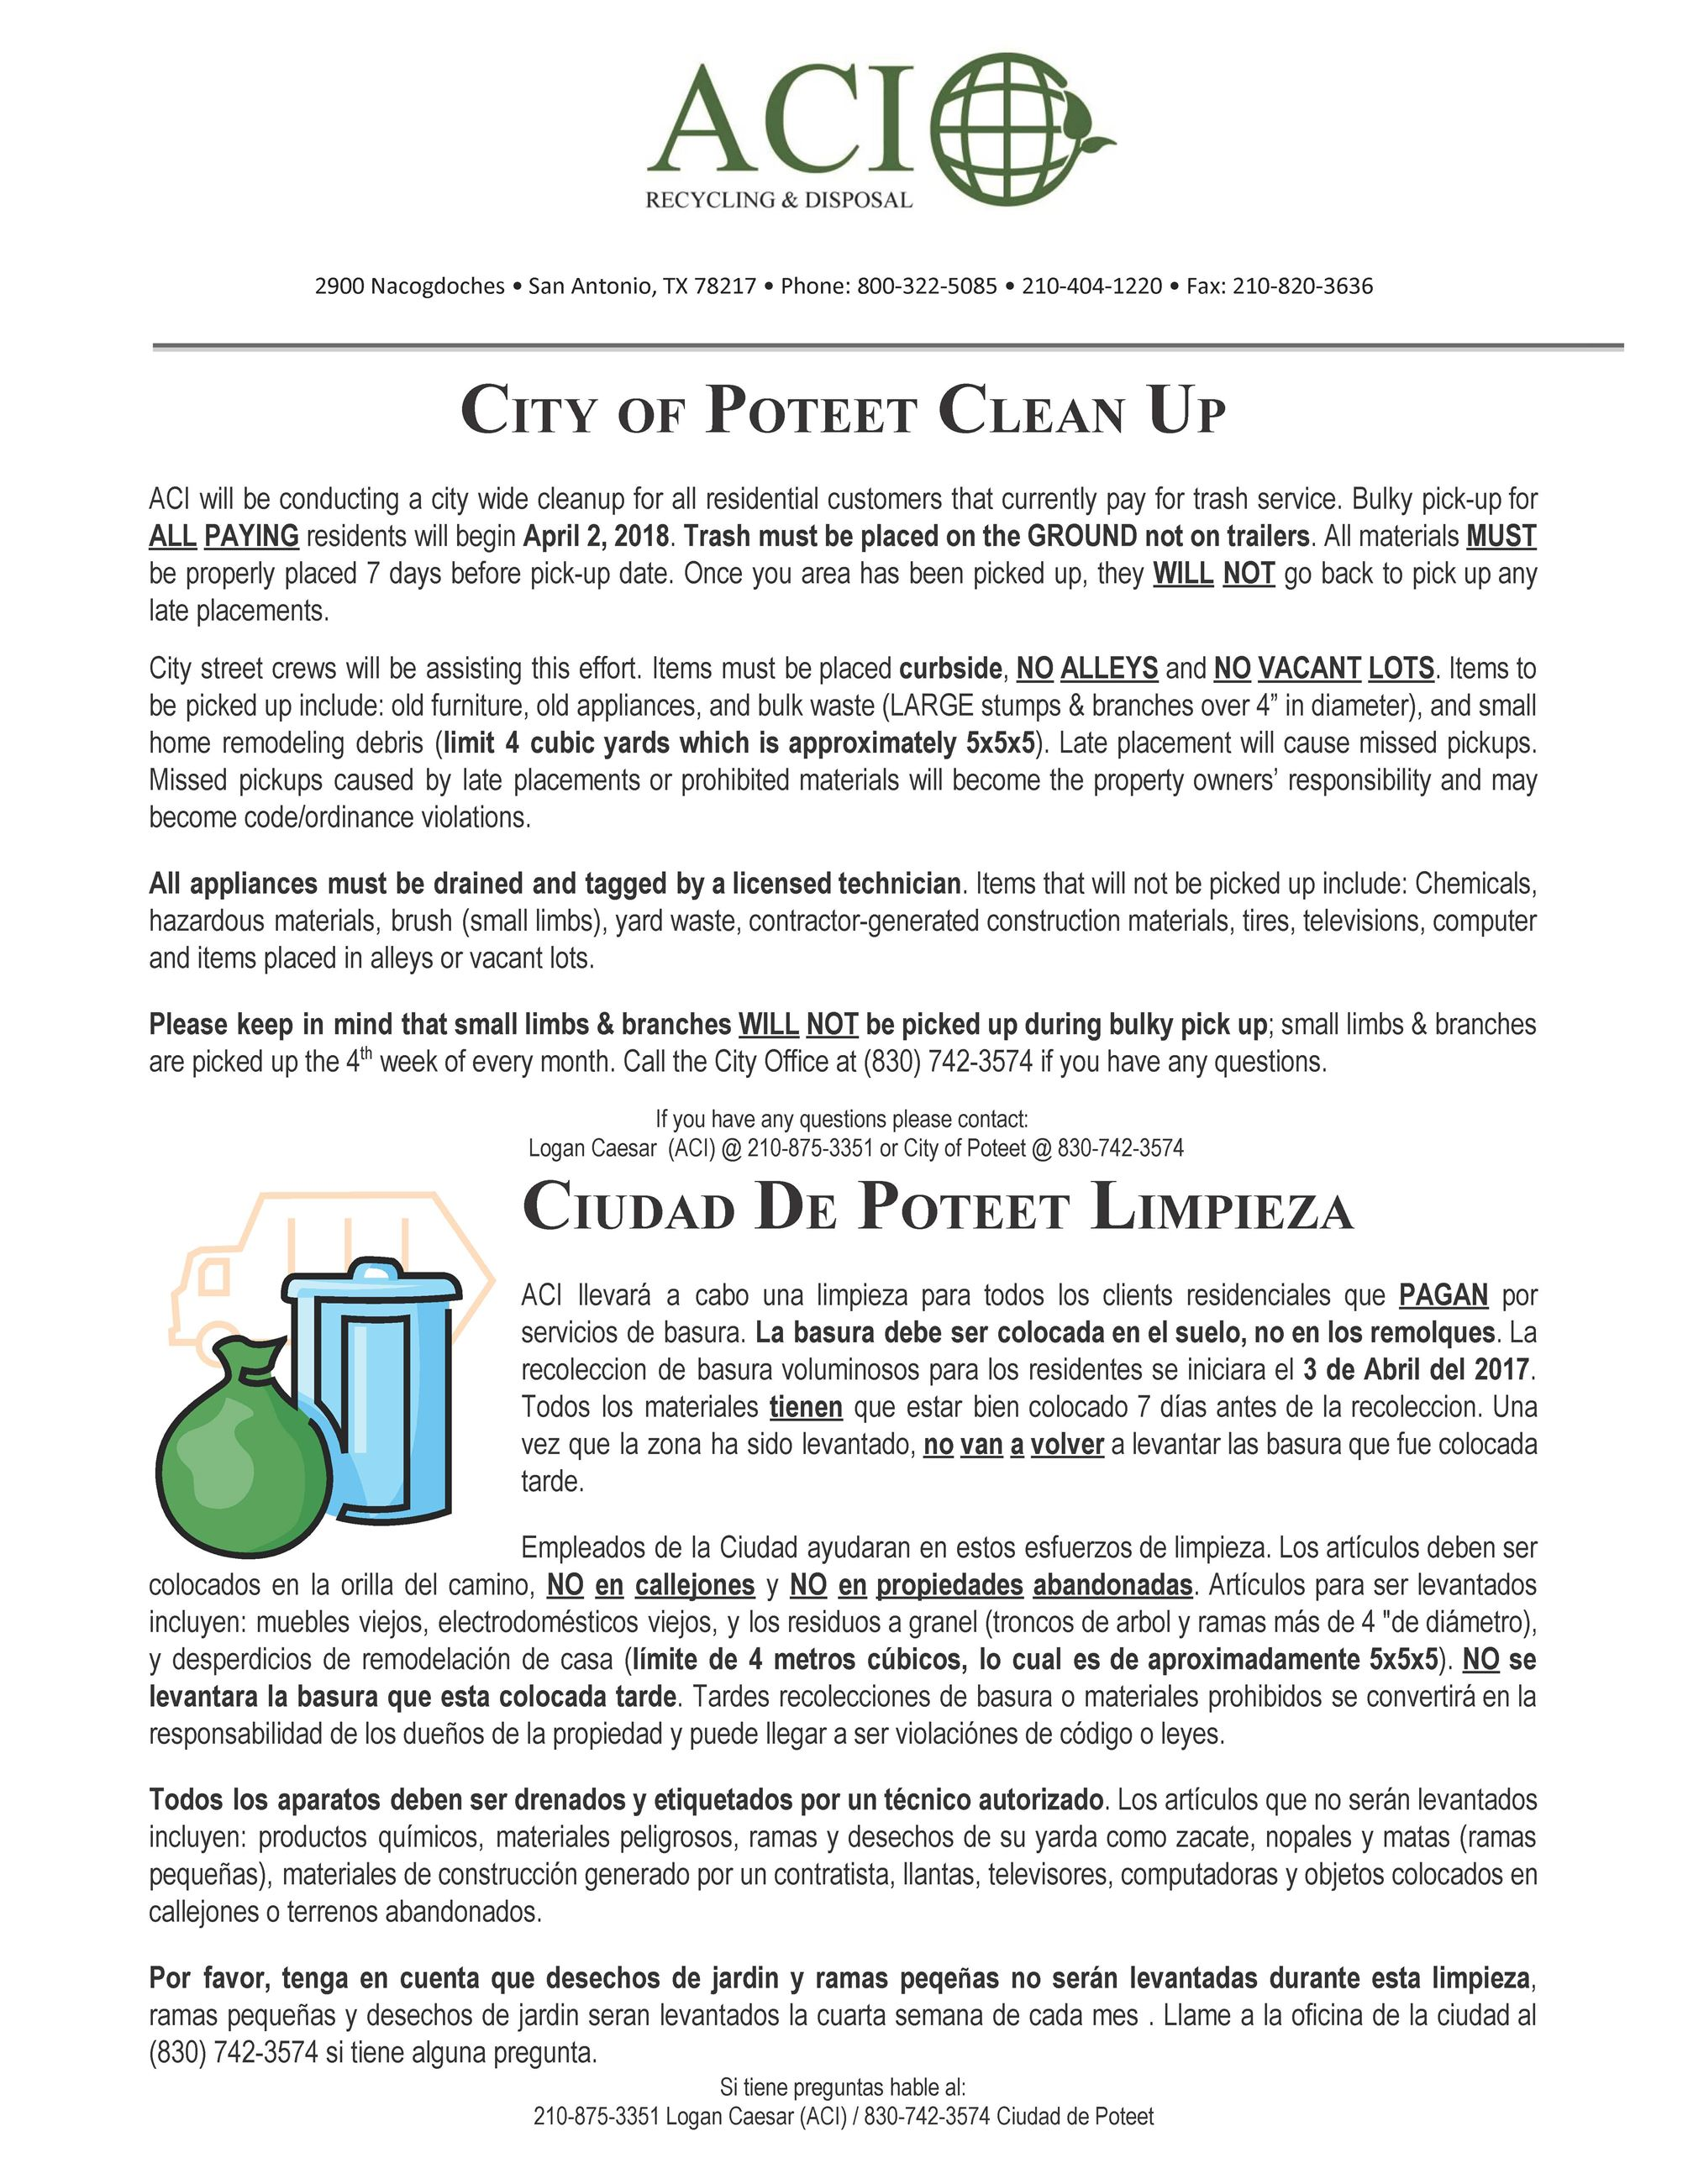 Poteet City Clean Up - Spring 2018